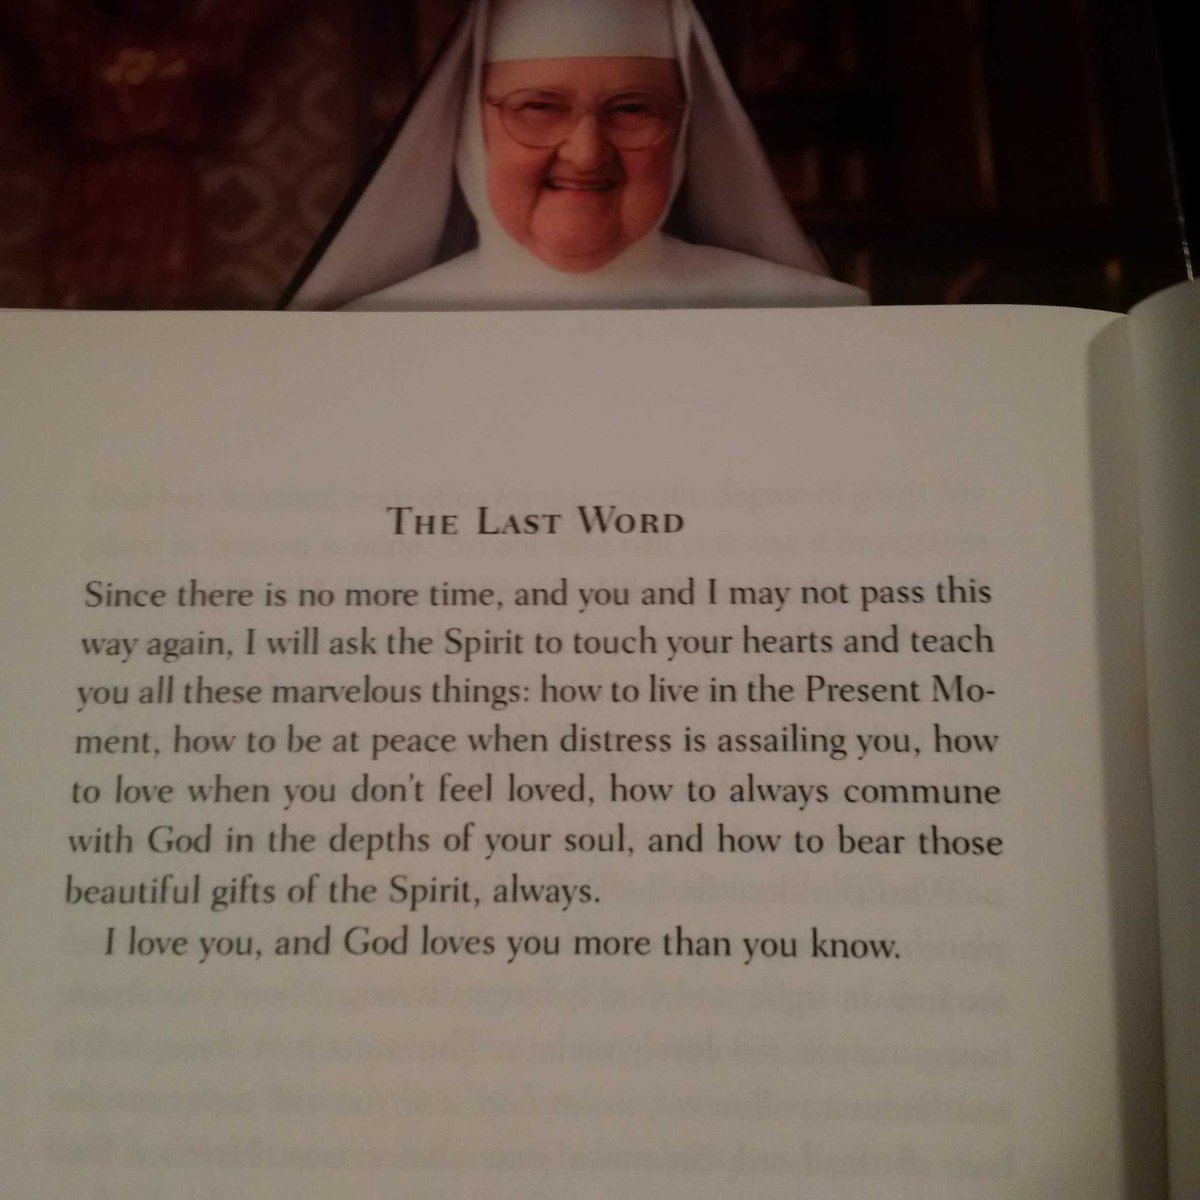 """#MotherAngelica """"The Last Word"""" and they are hers! This is from MA's Little Book of Life Lessons: https://t.co/60NSrk5bYE"""